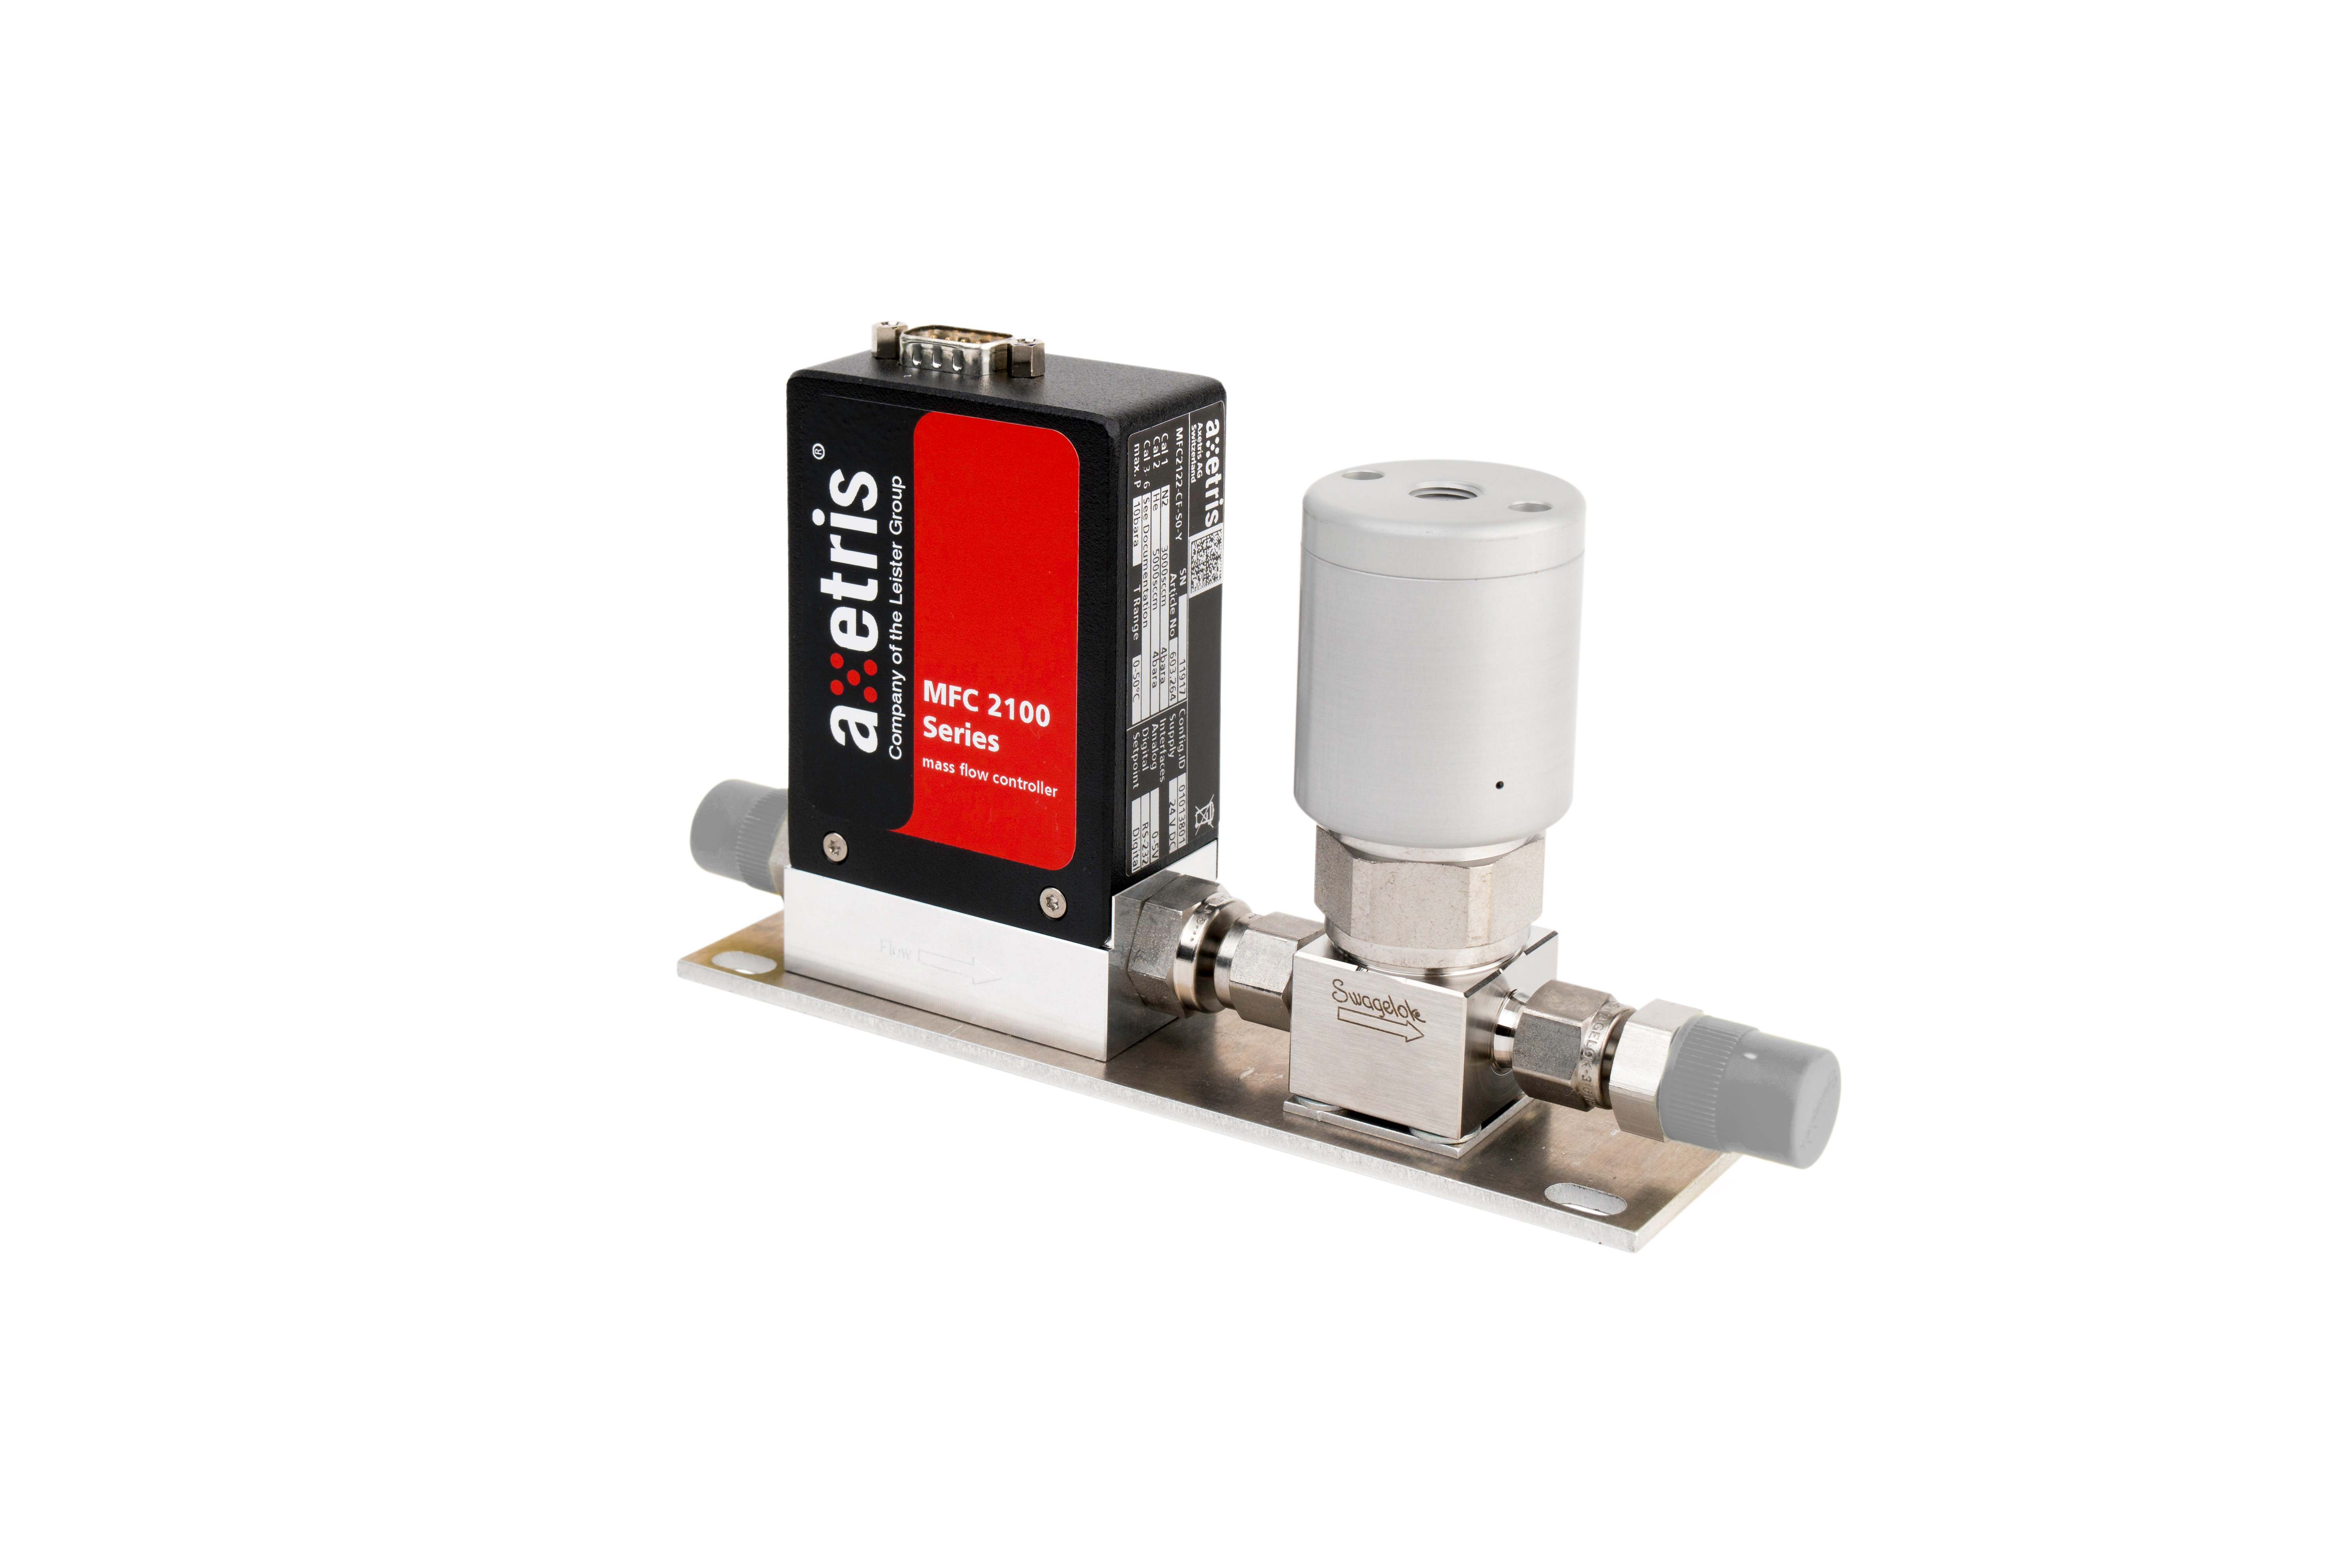 MFC 2100 Series with integrated shut-off valve